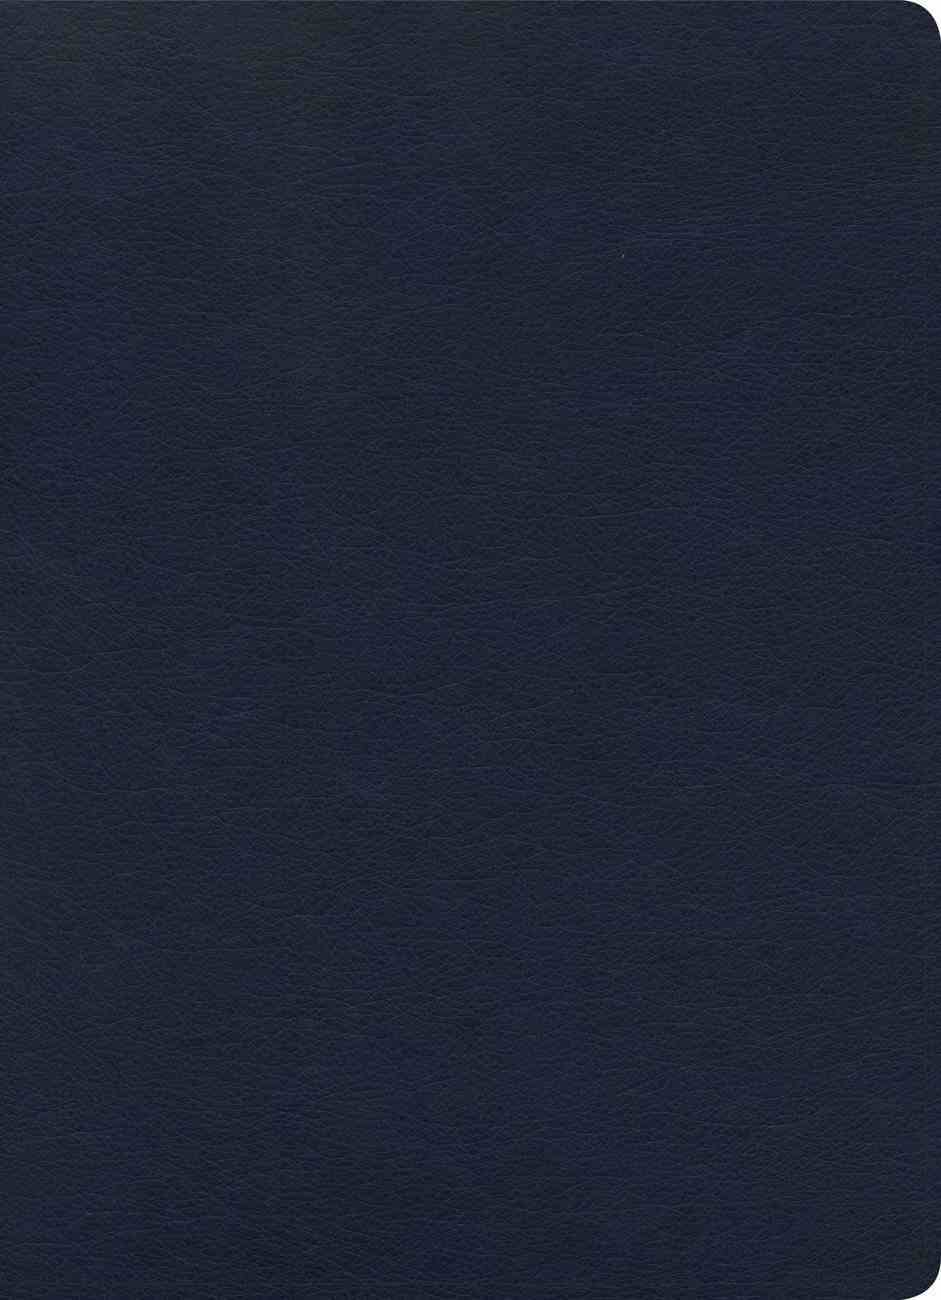 KJV Study Bible Full-Color Navy Indexed Imitation Leather